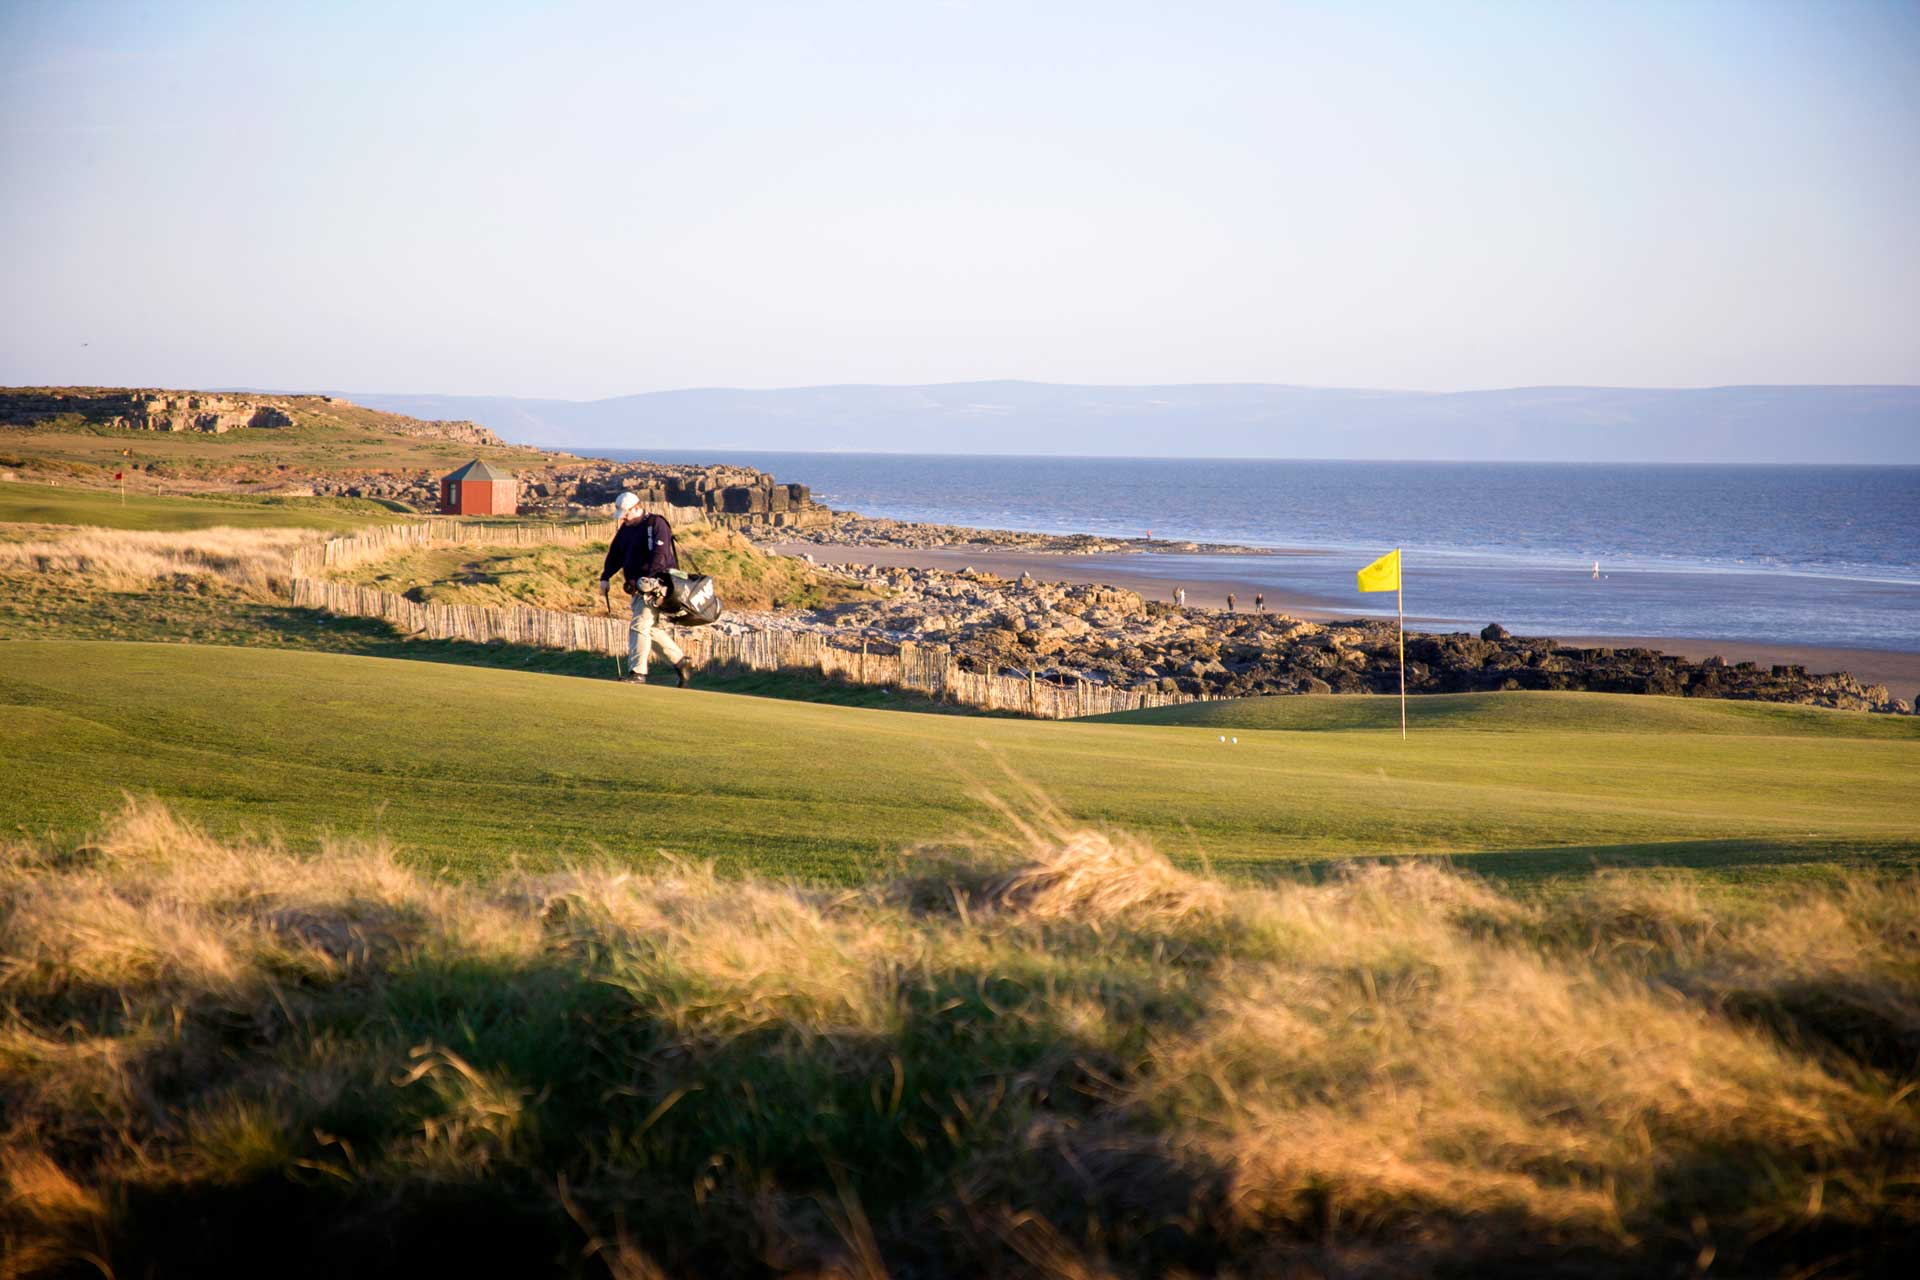 Views of the sea and golf course at the Royal Porthcawl Golf Club